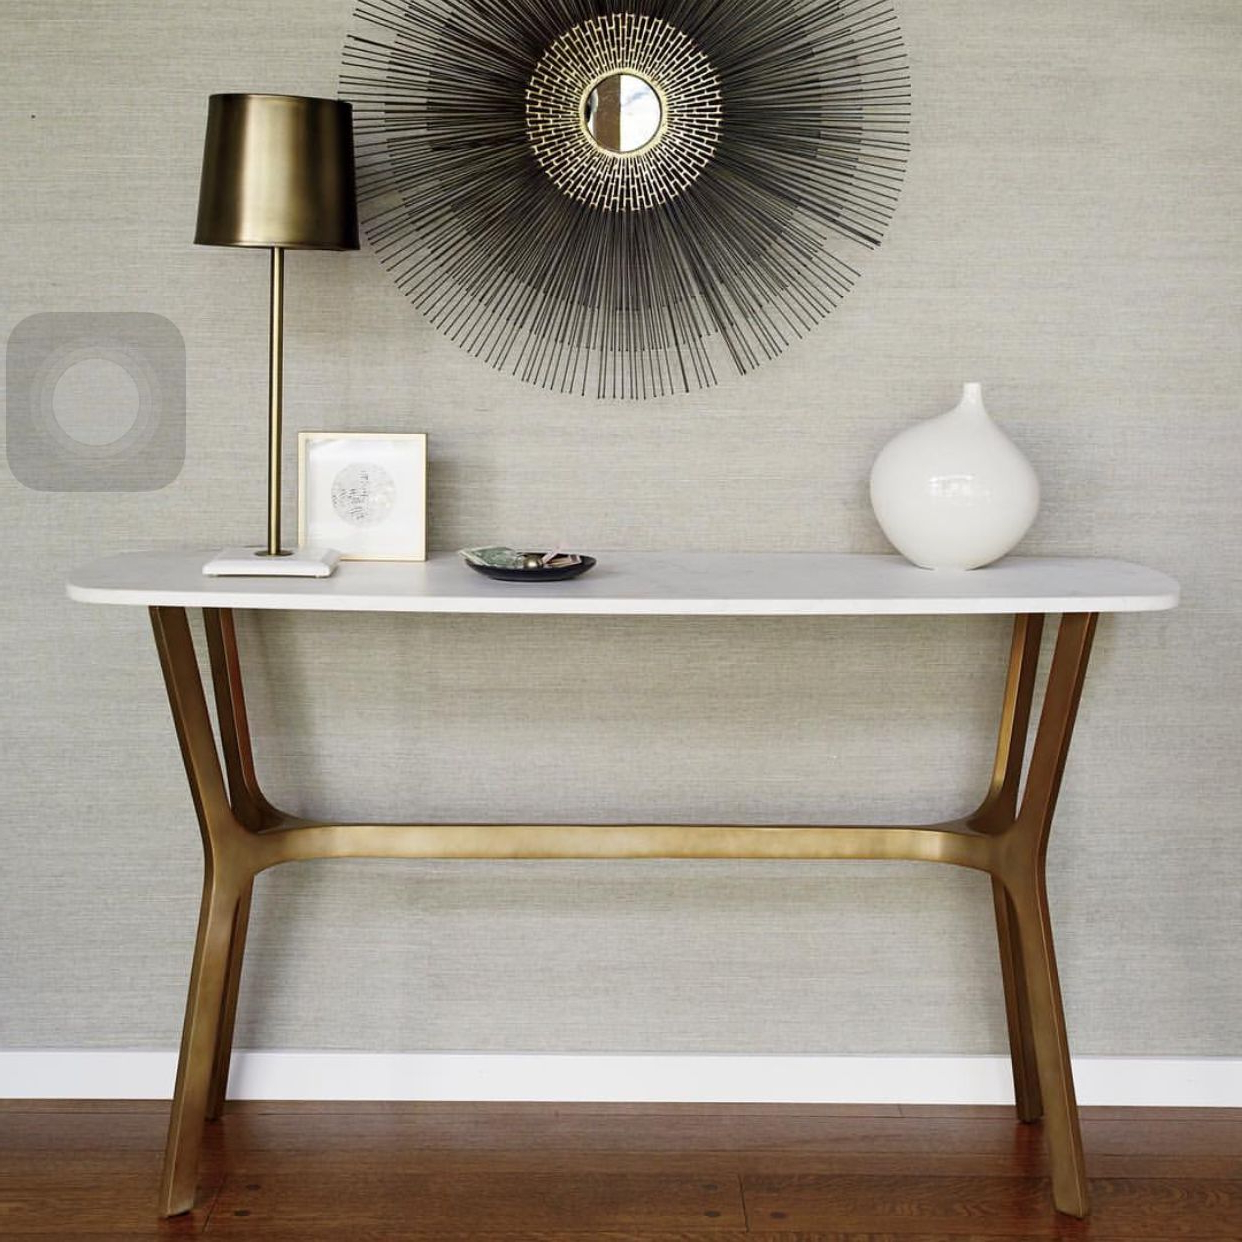 Photocrate & Barrel | Deco Inspirations | Pinterest | Crates And For Elke Marble Console Tables With Polished Aluminum Base (Gallery 11 of 20)